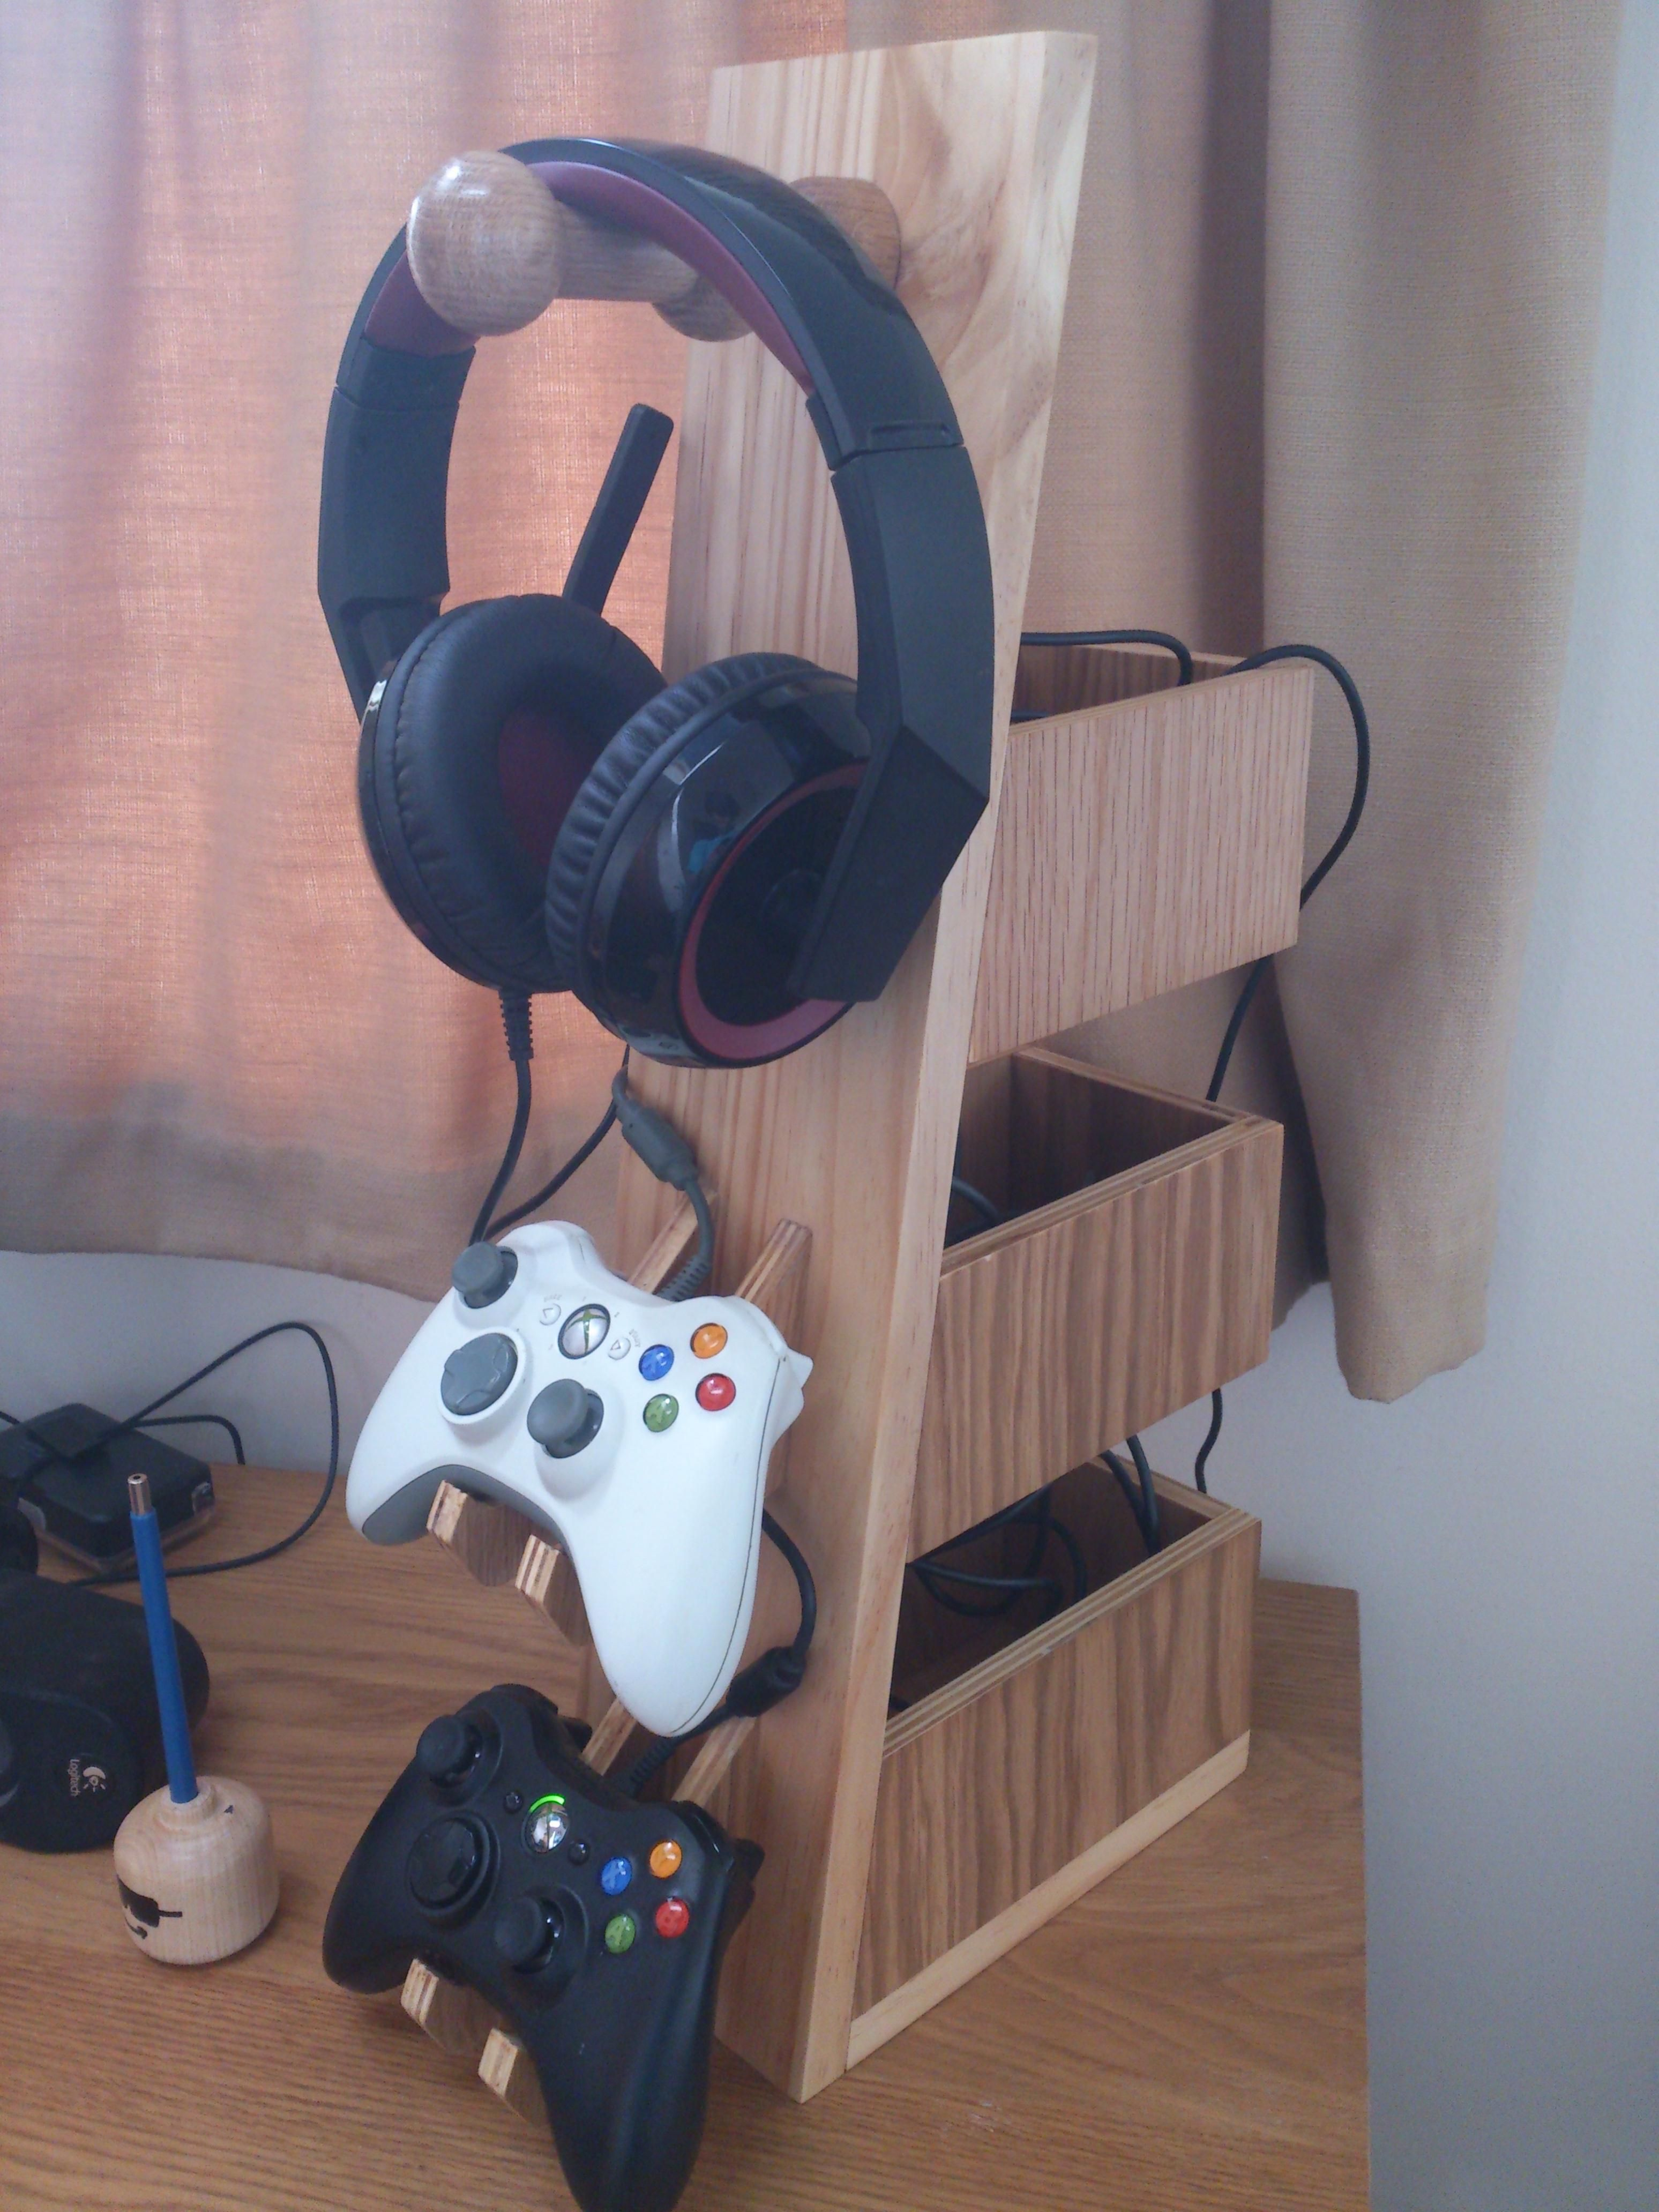 The Making Of A Headset And Controller Rack